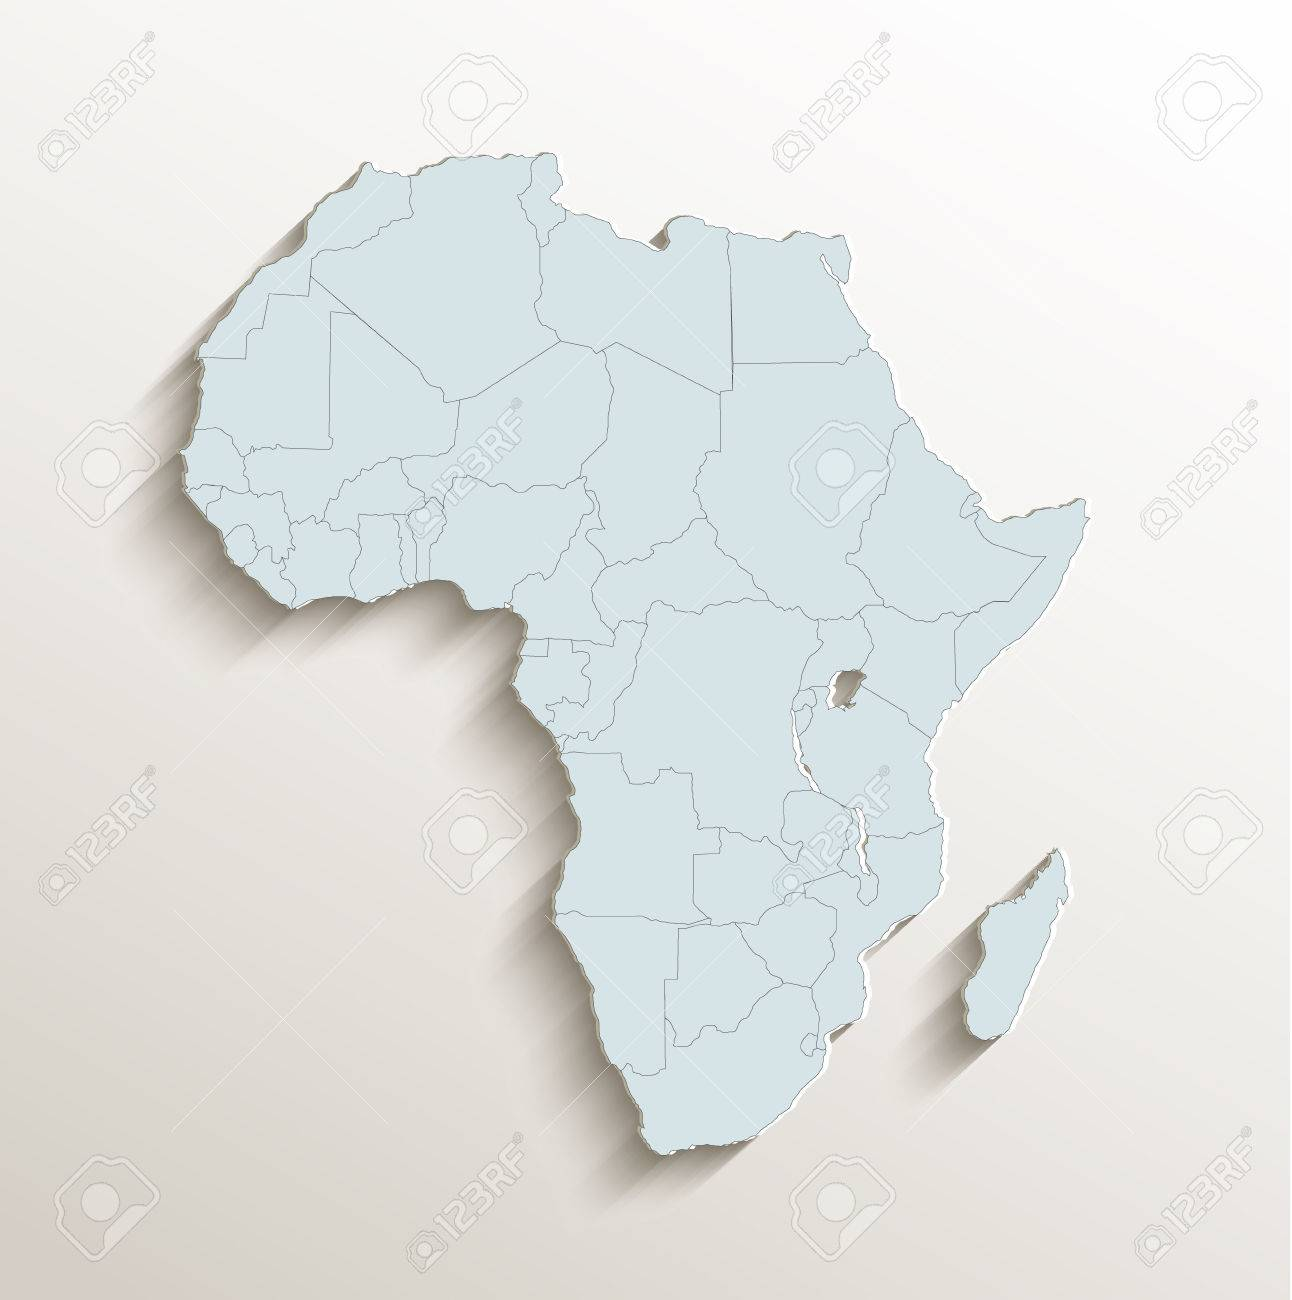 Africa Political Map White Blue 3D Raster Stock Photo  Picture And     Africa political map white blue 3D raster Stock Photo   62635726